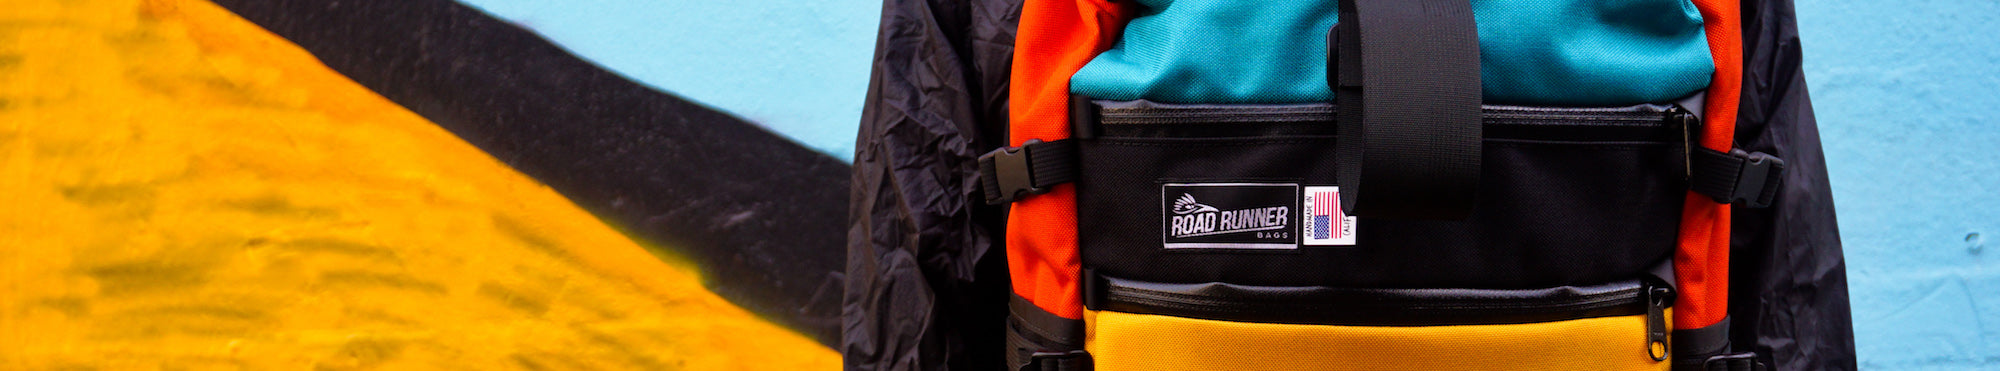 Road Runner Bags Cycling Bags and Accessories